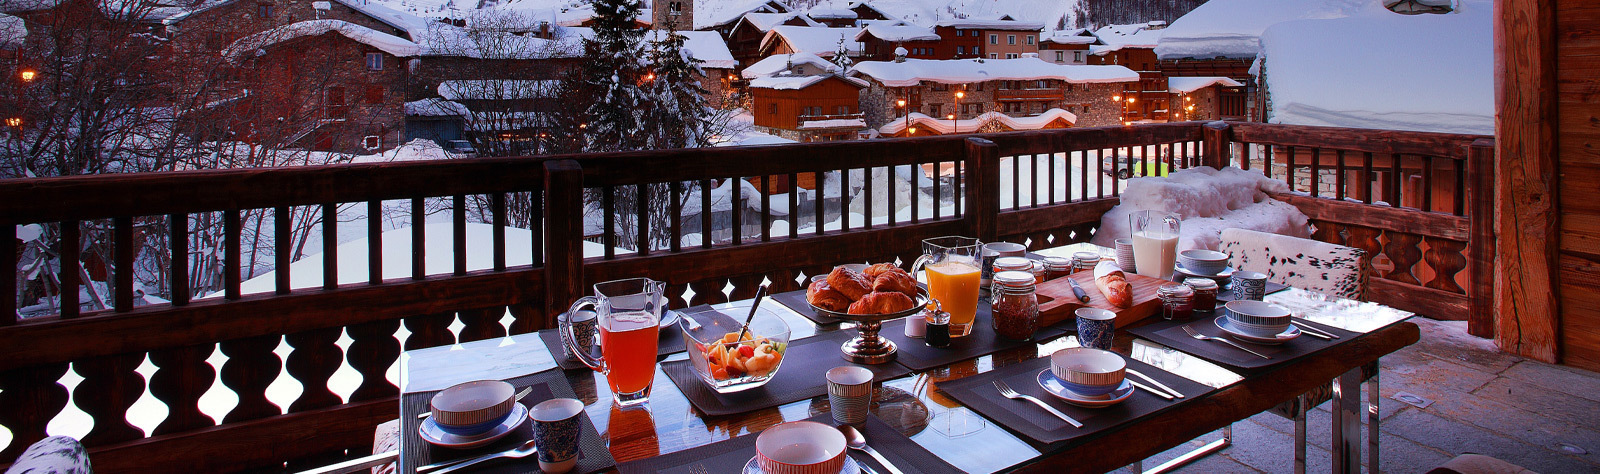 Arosa accommodations